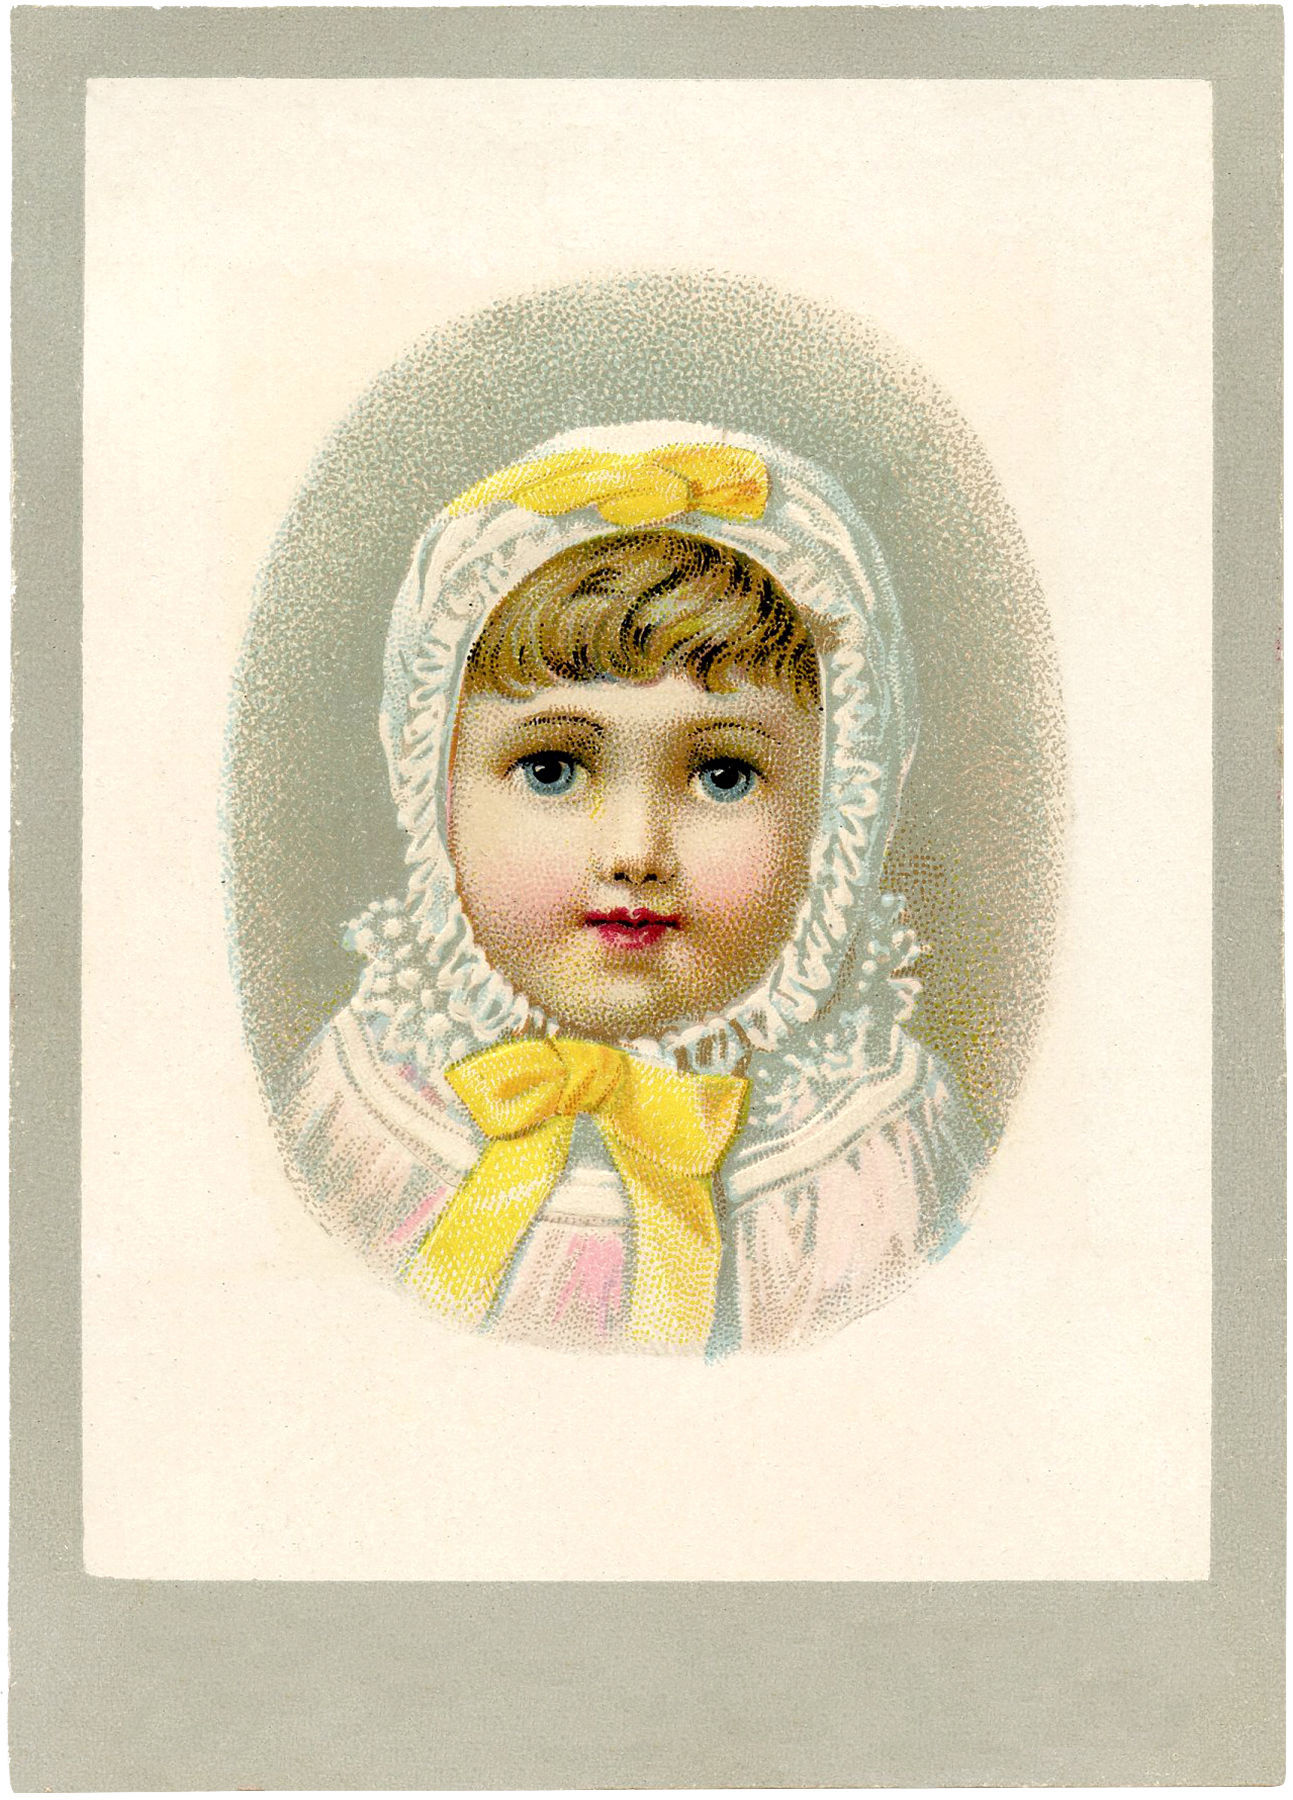 Vintage Cute Face Girl Image!